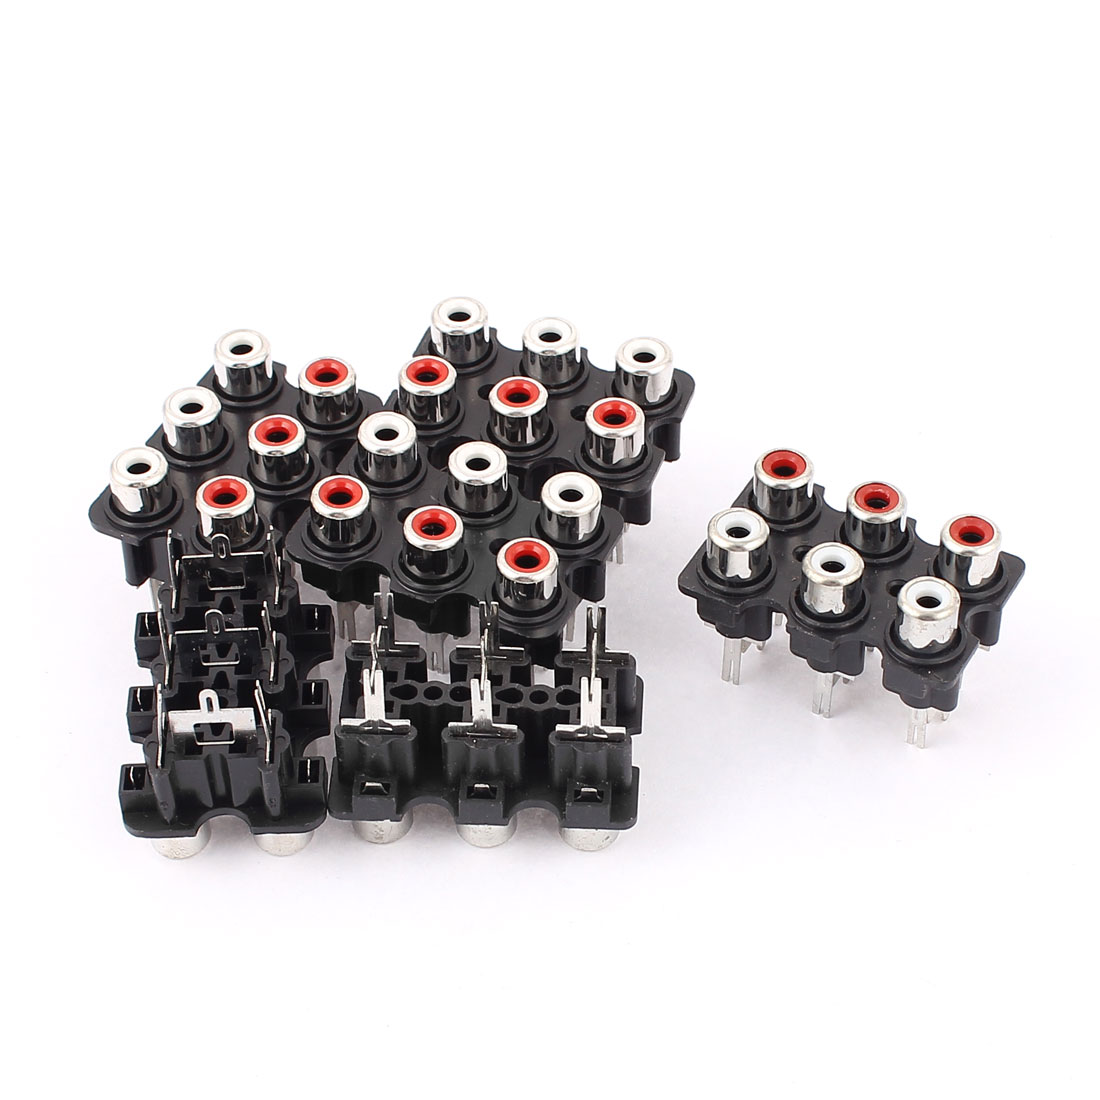 Audio Video Concentric RCA Socket 6 Female Jack Connector Adapter 6pcs